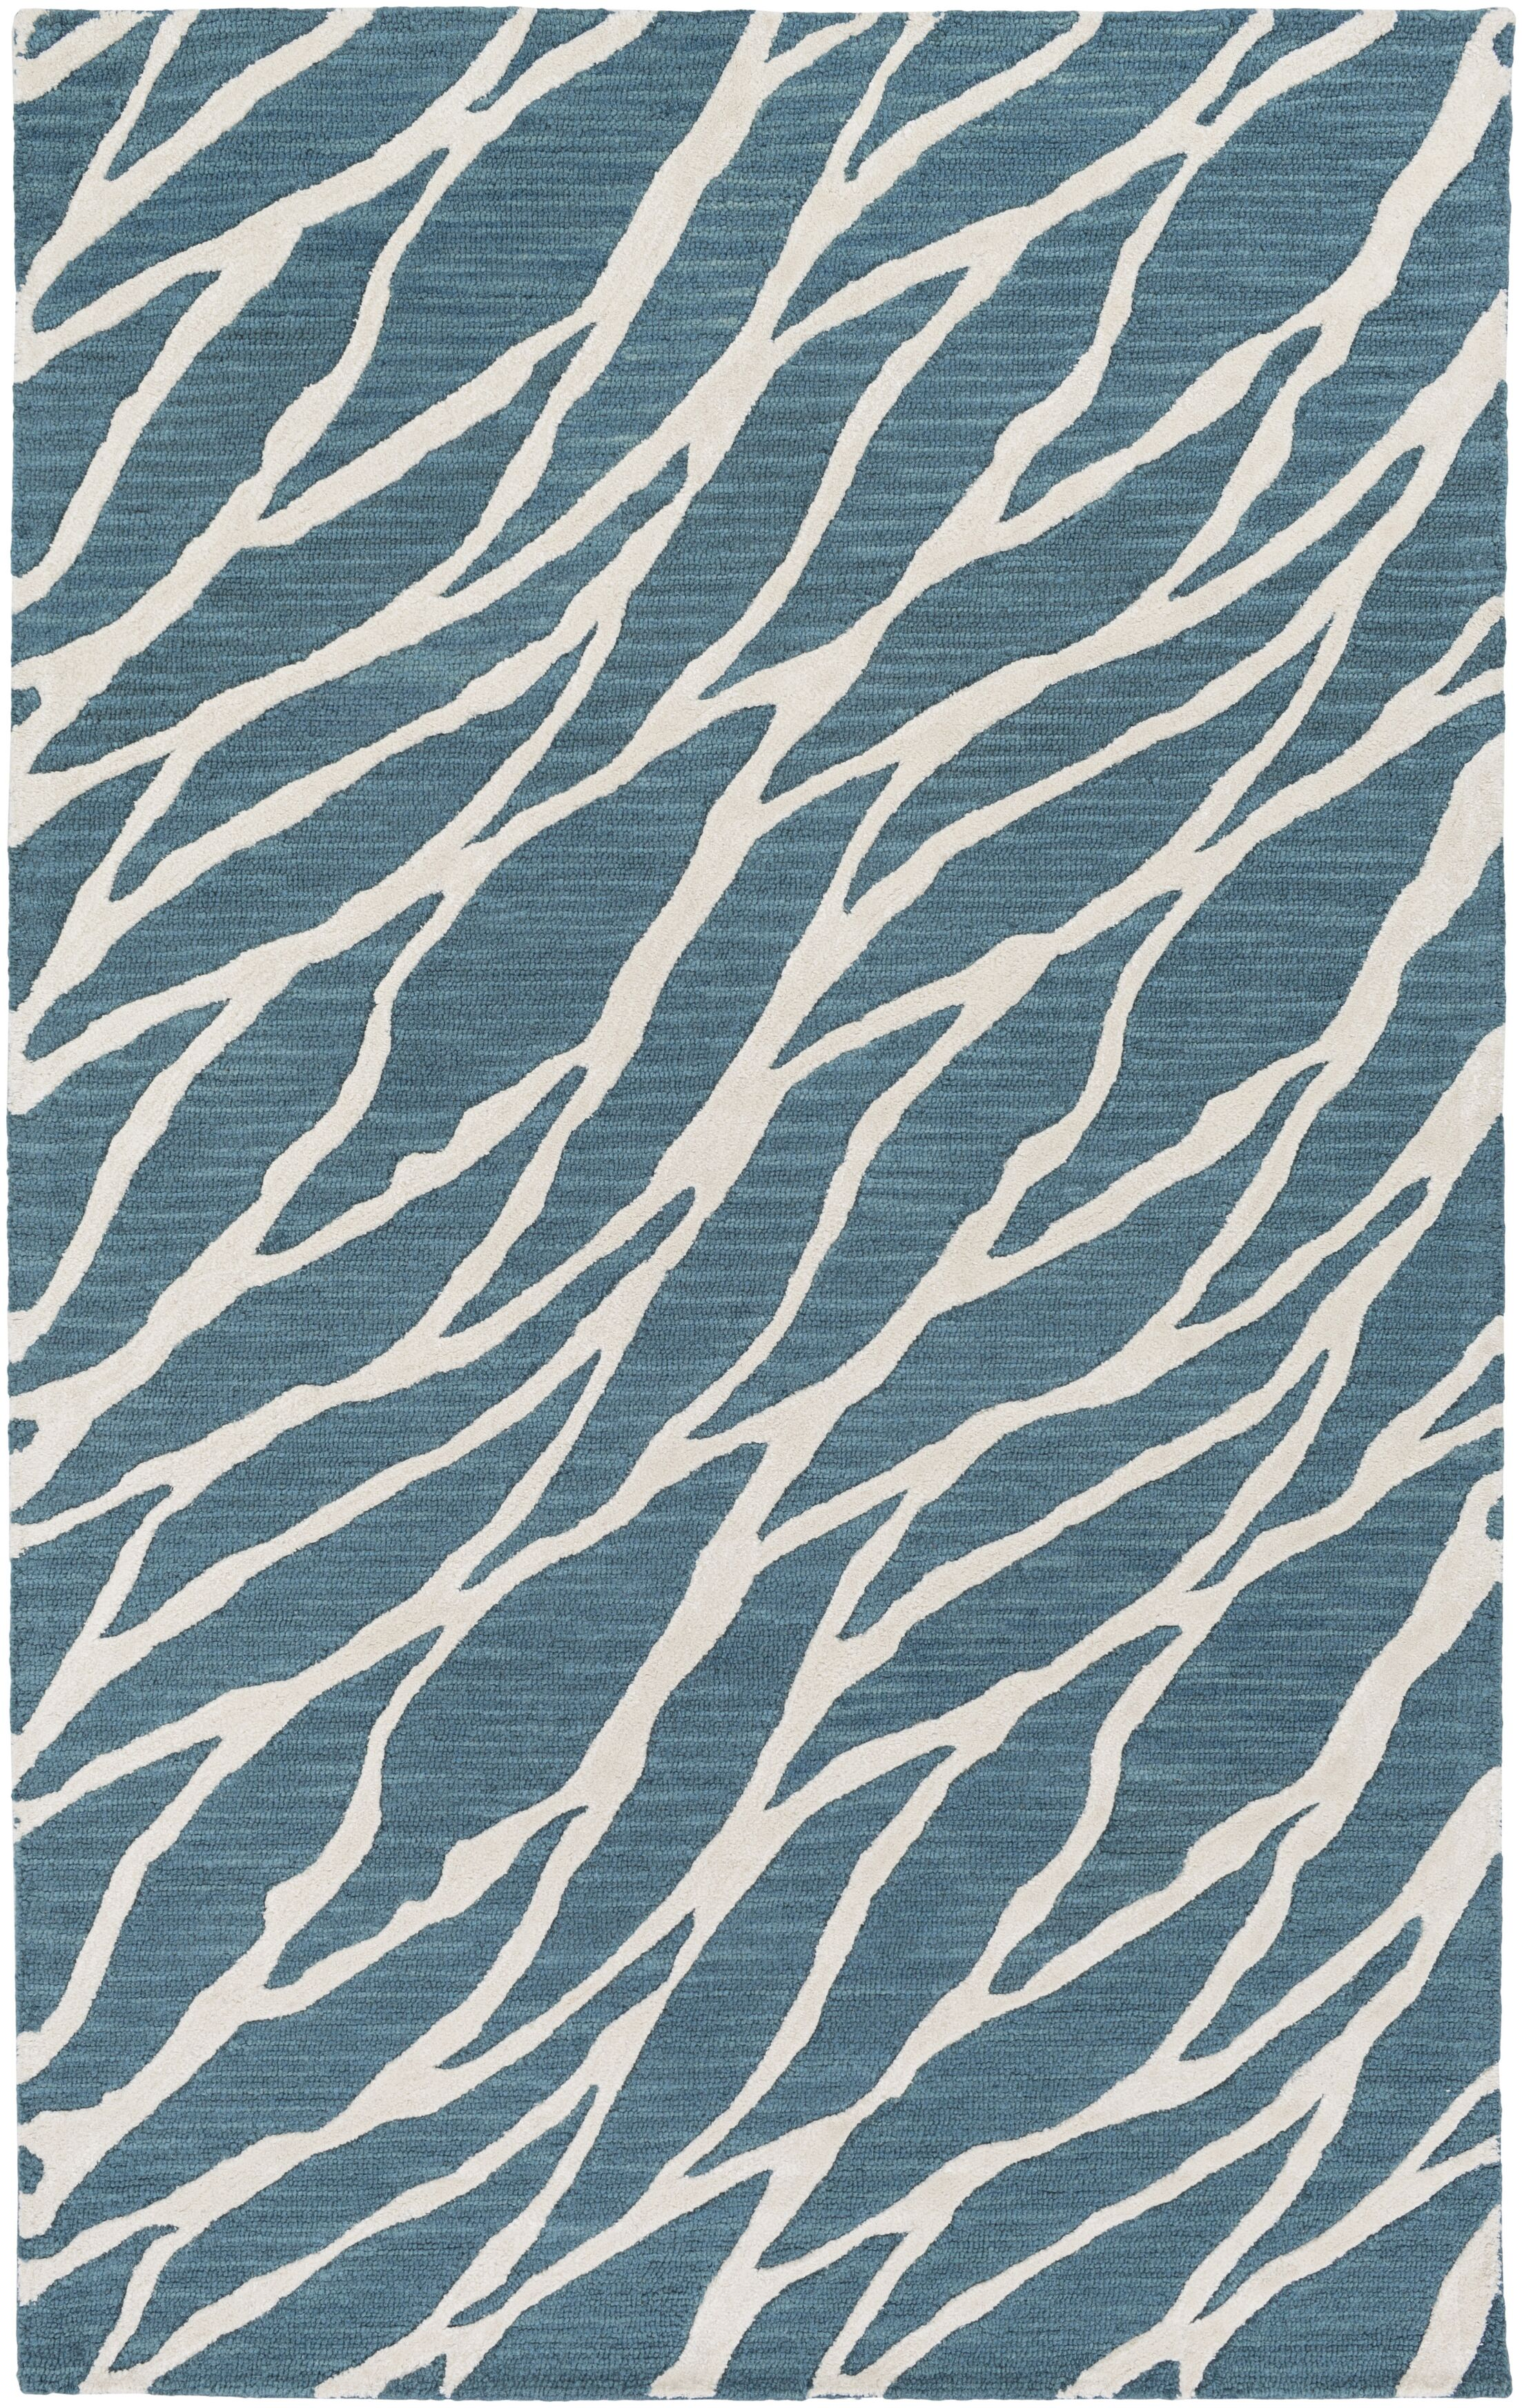 Blewett Hand-Tufted Blue/Ivory Area Rug Rug Size: Rectangle 8' x 10'